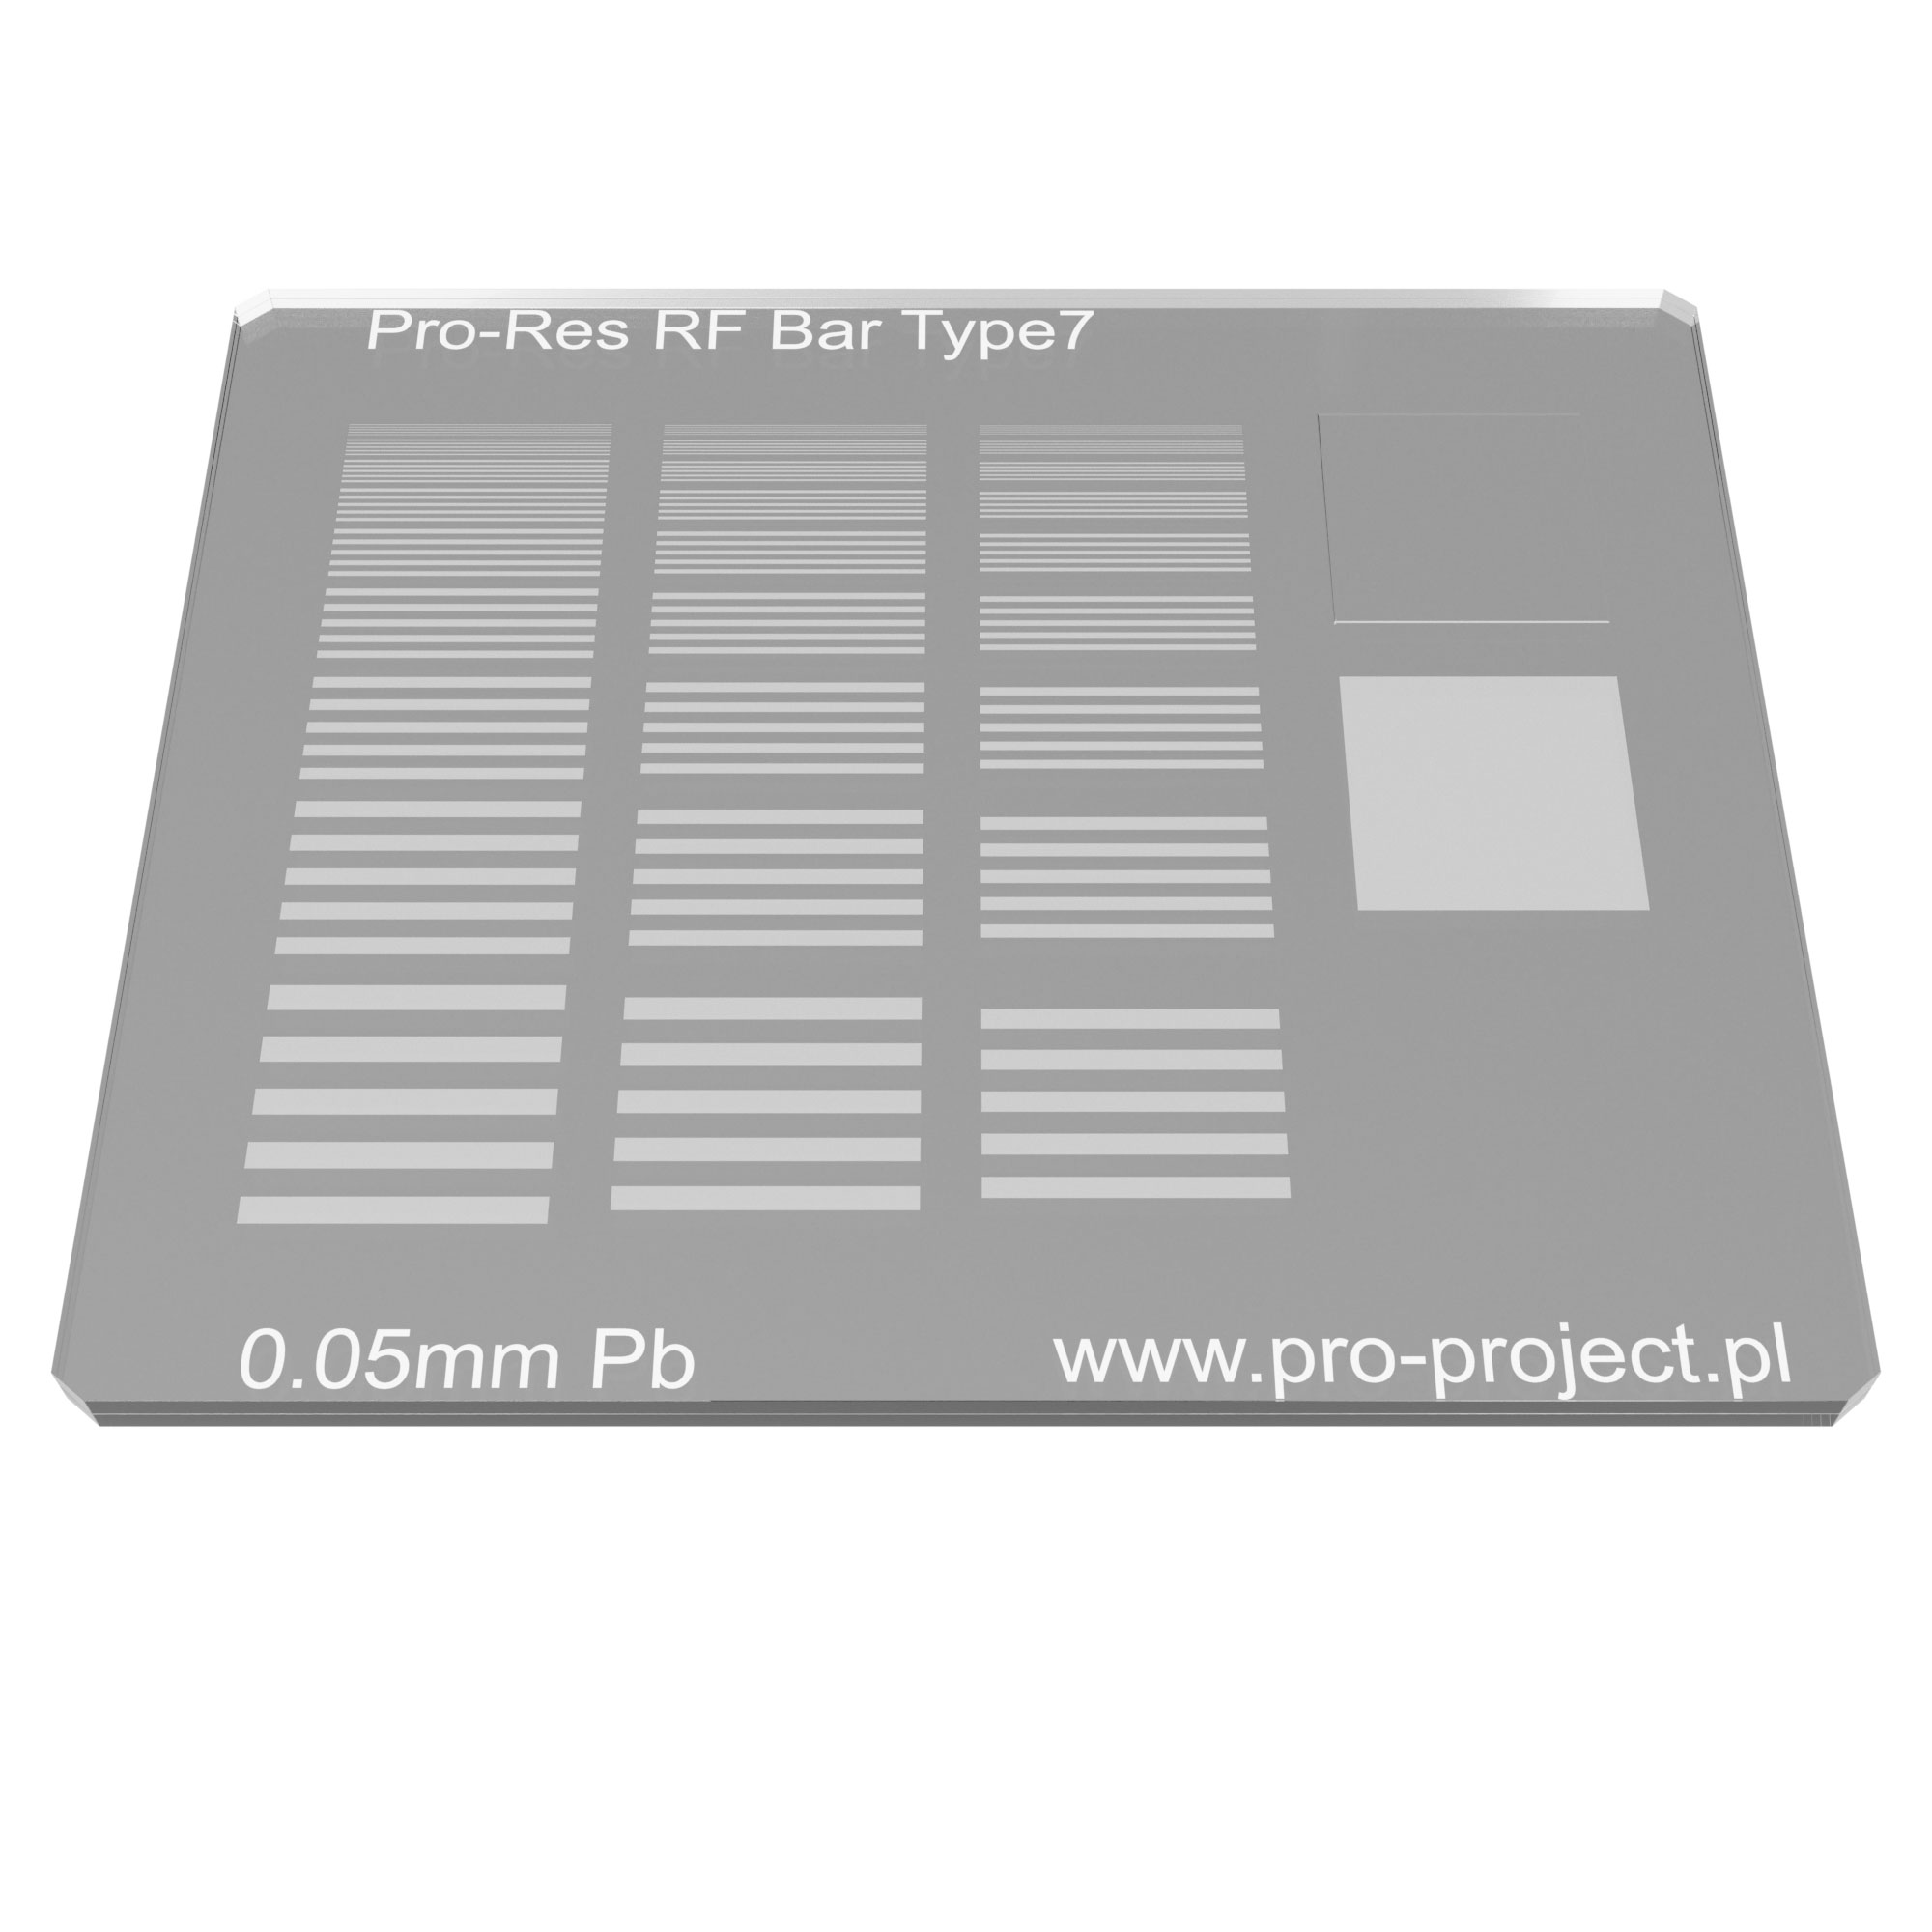 Pro-Res RF BarType 7